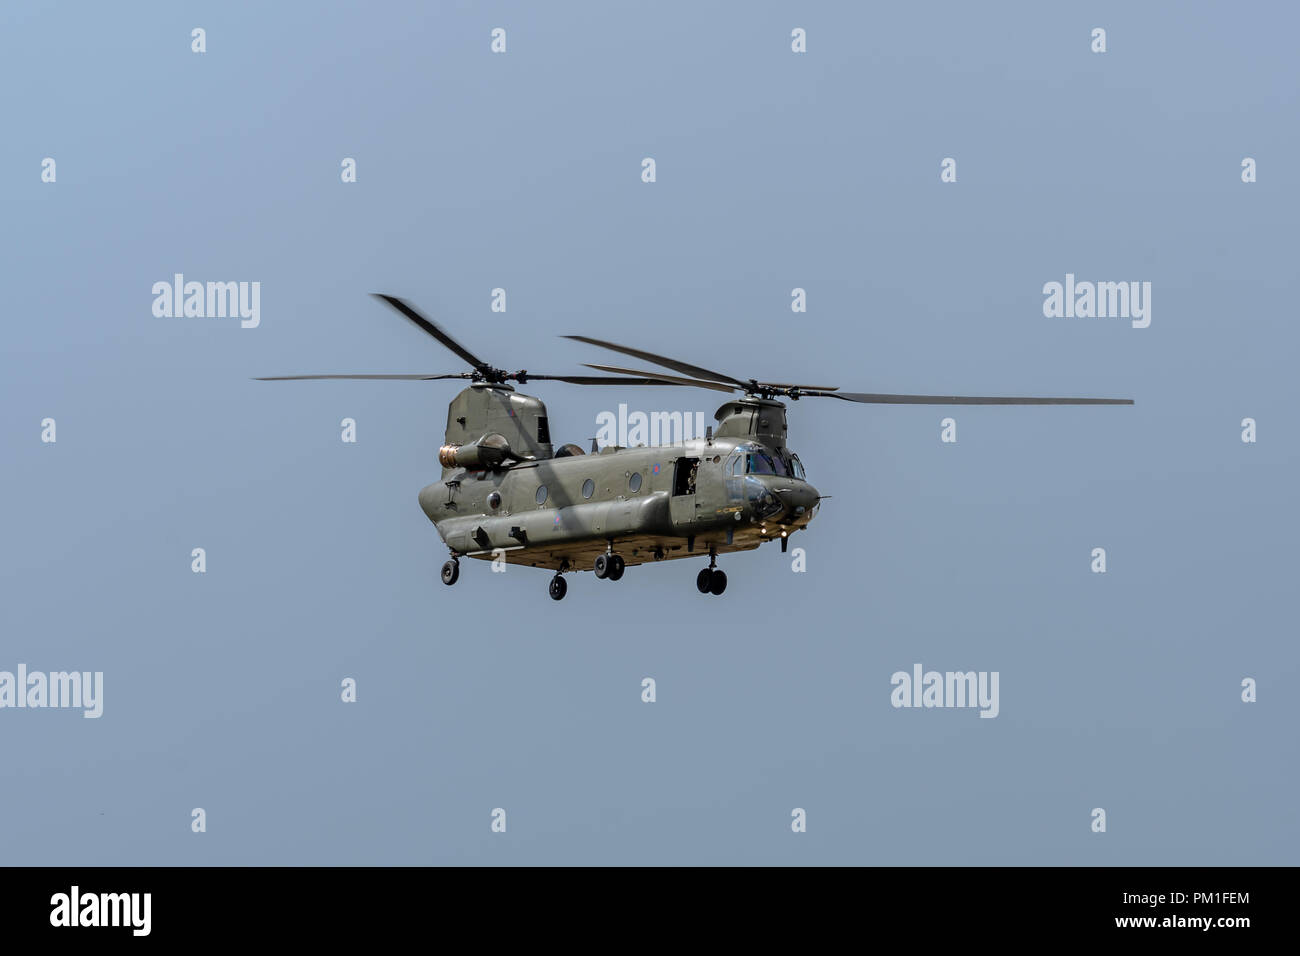 FAIRFORD, UK, JULY 13 2018: A photograph documenting the Royal Air Force displaying a Boeing Chinook twin rotor helicopter aircraft at RAF Fairford Stock Photo